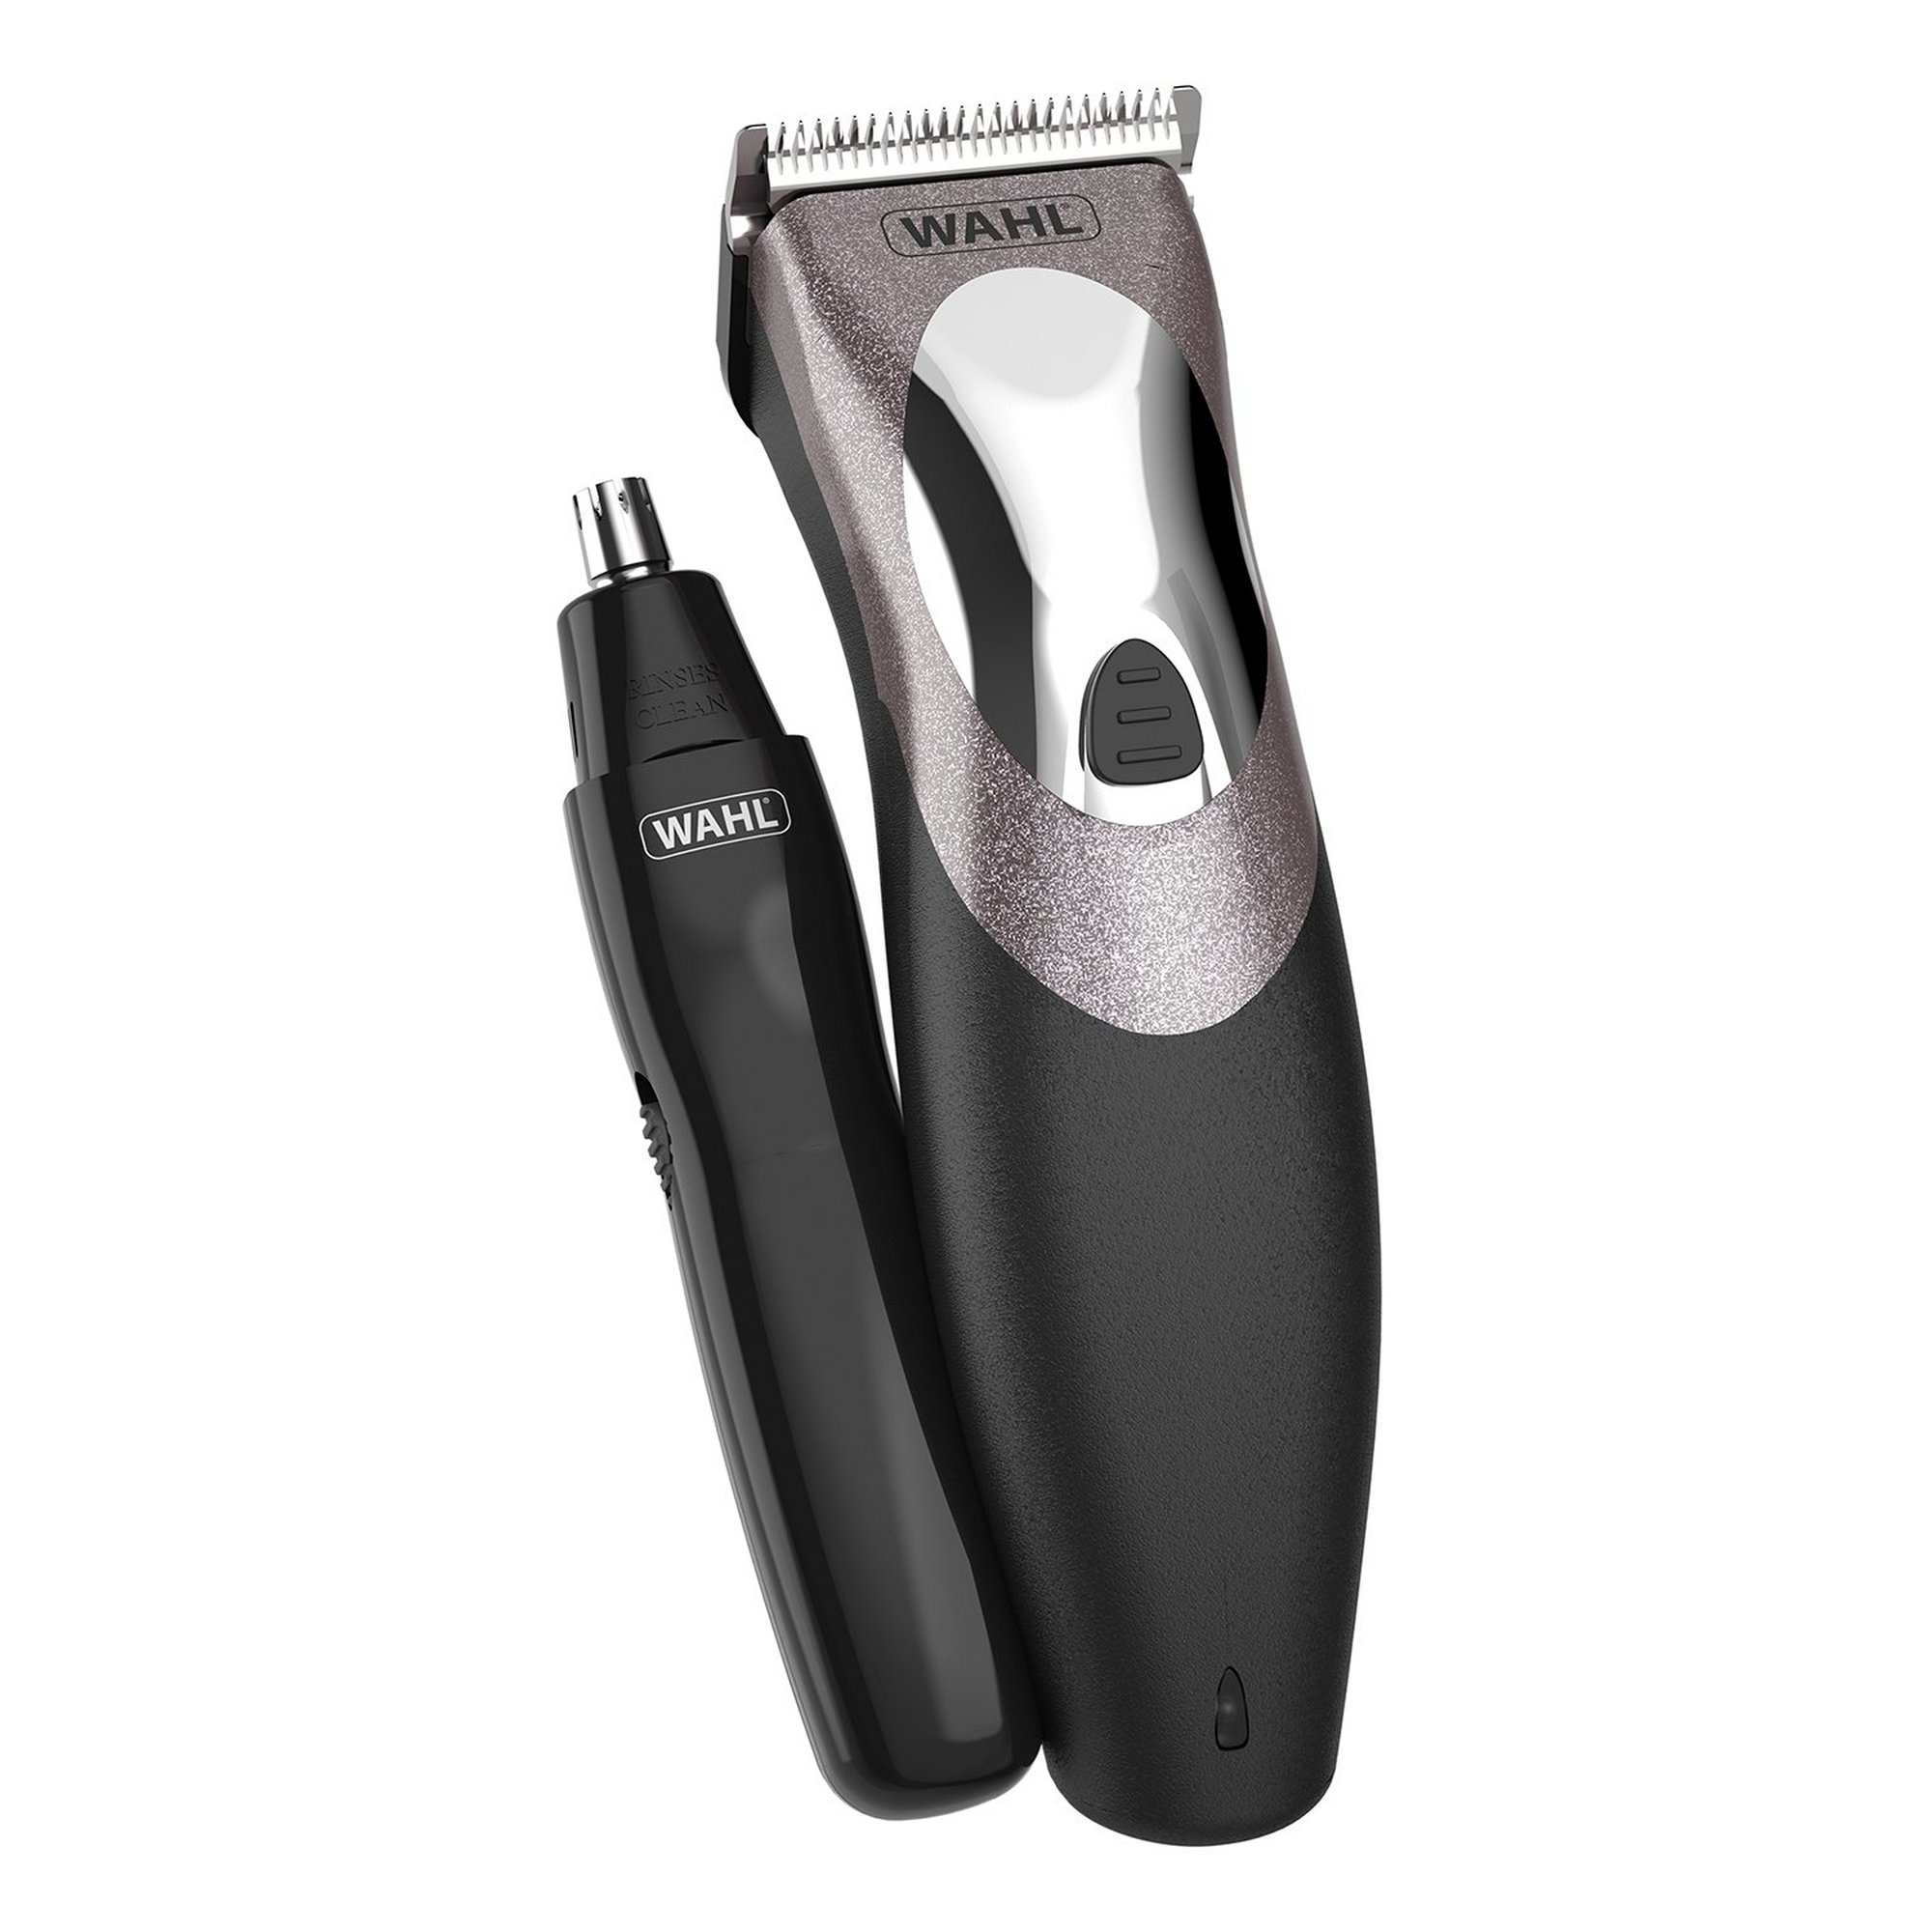 Image of Wahl Clip N Rinse 2-in-1 Rechargeable Hair Clippers